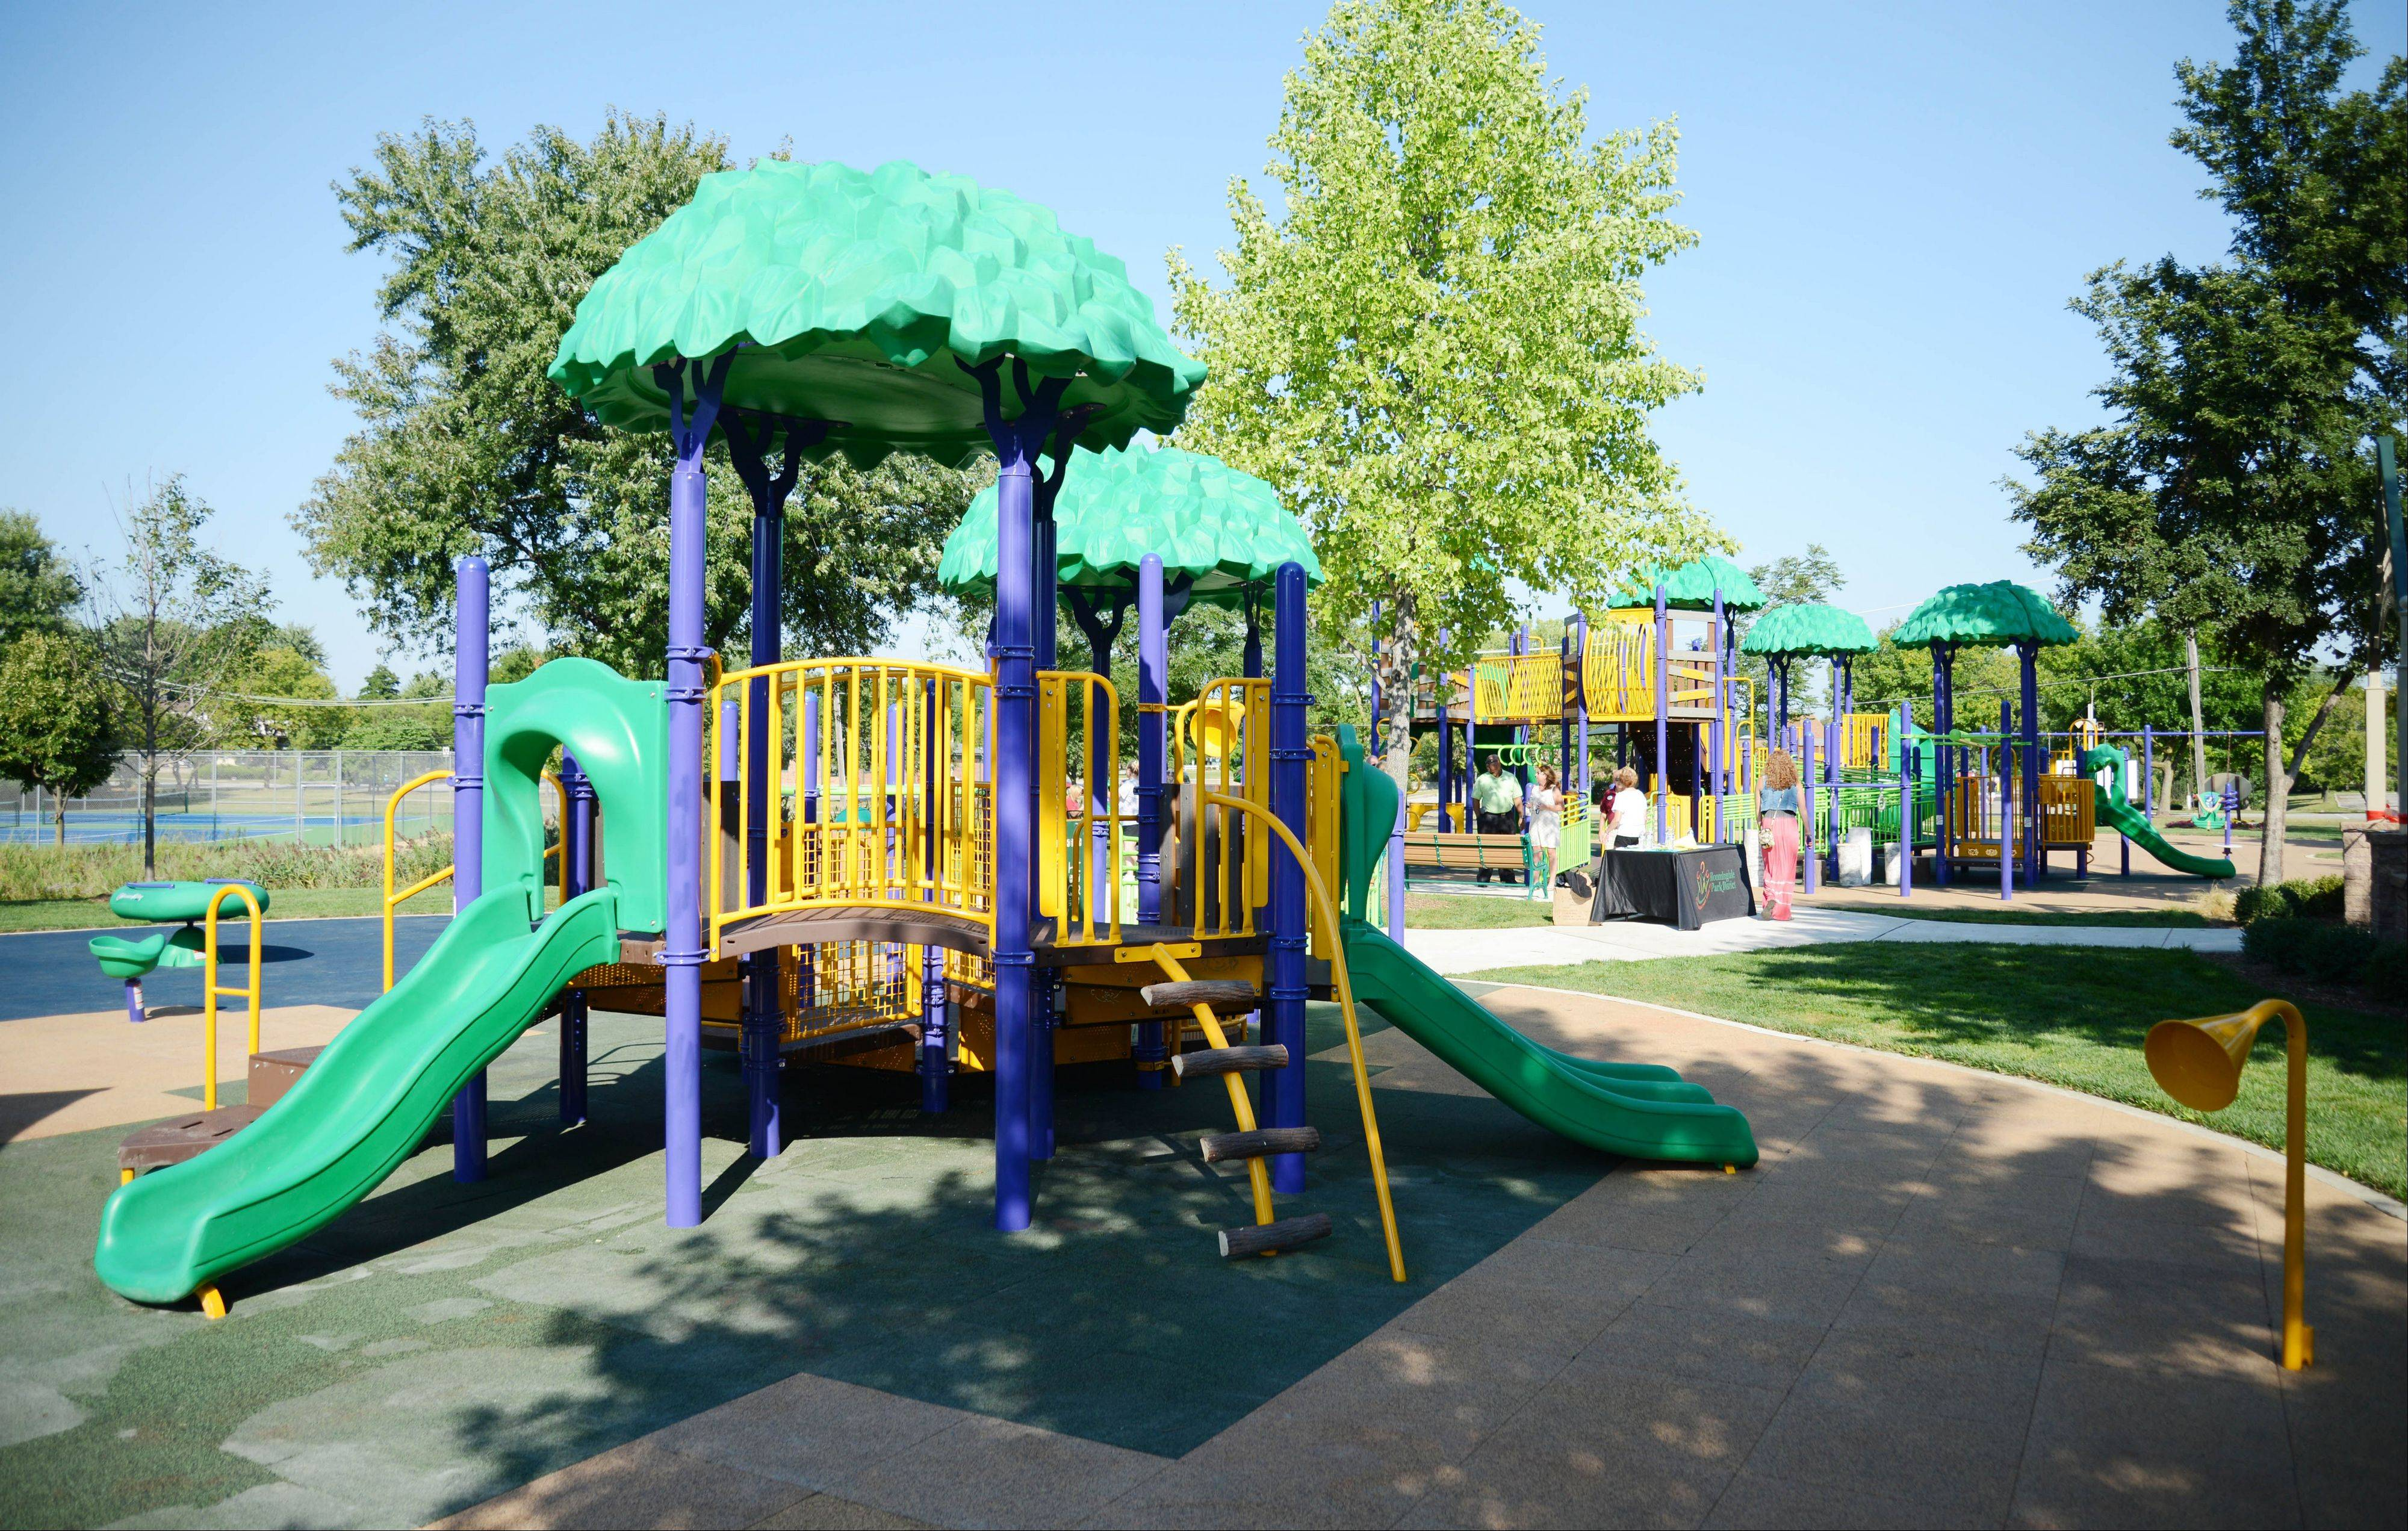 Sunnyside Accessible Park in Bloomingdale has a playground structure that's fully accessible for children of all abilities.